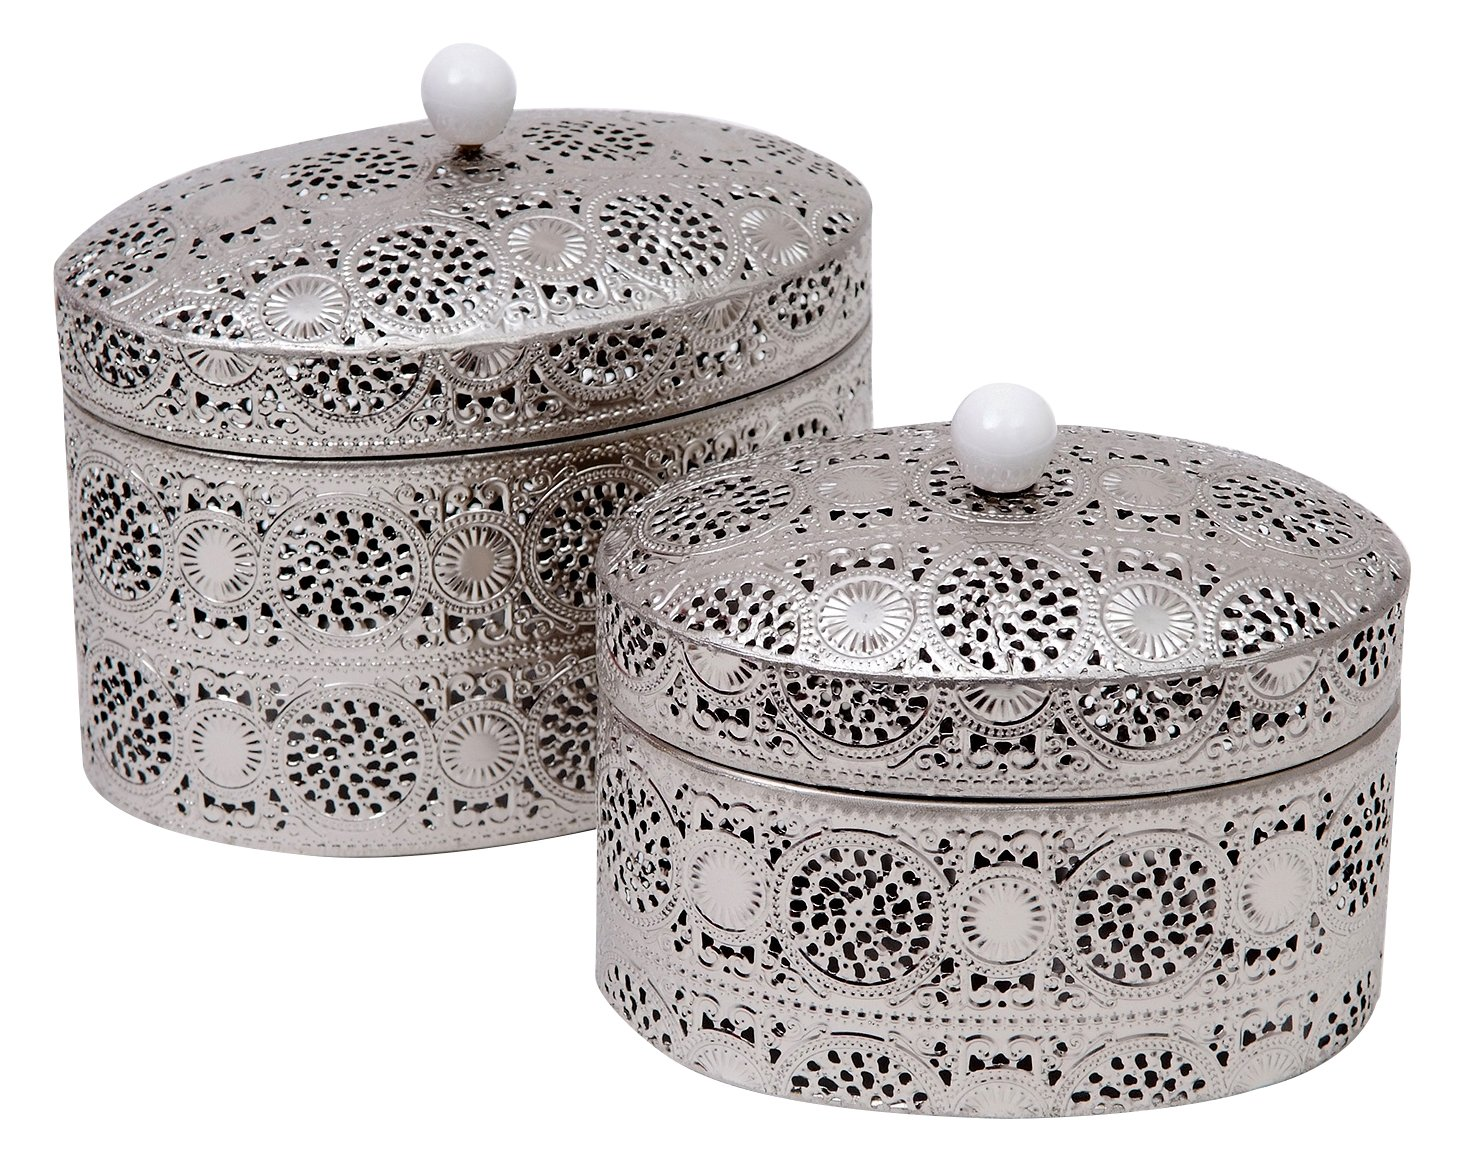 Burkina Home Decor 9016140 Set de Cajas Decorativas, Metal, Plata, 22x15x20 cm: Amazon.es: Hogar